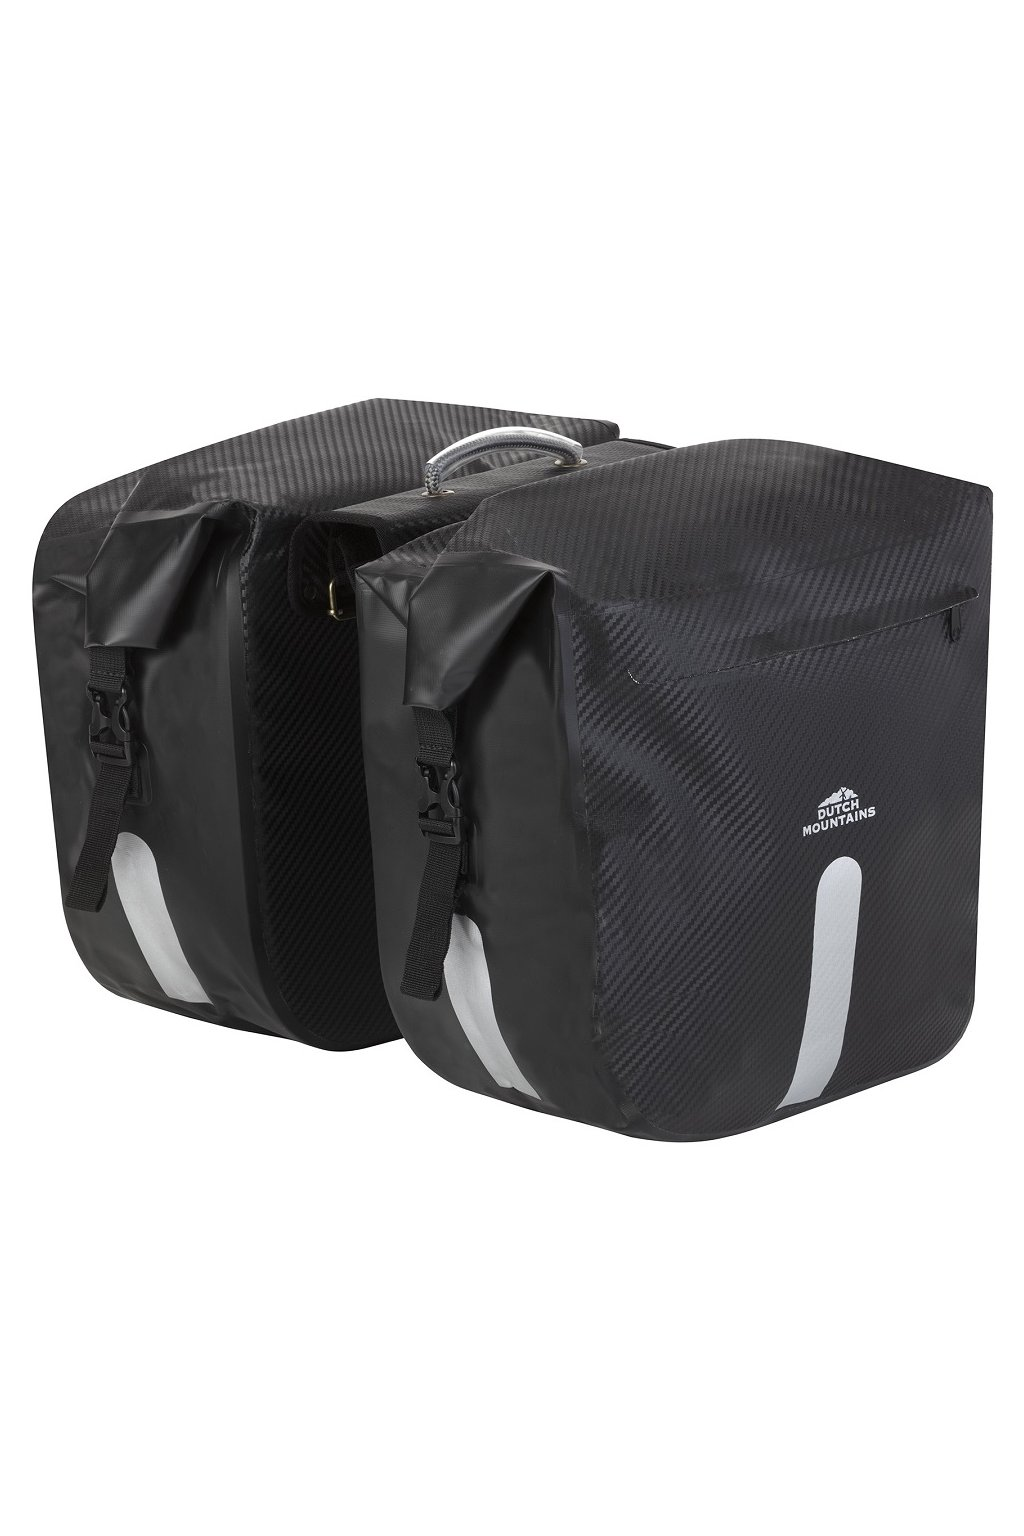 kufrland dutchmountains dmbicyclebags double (2)